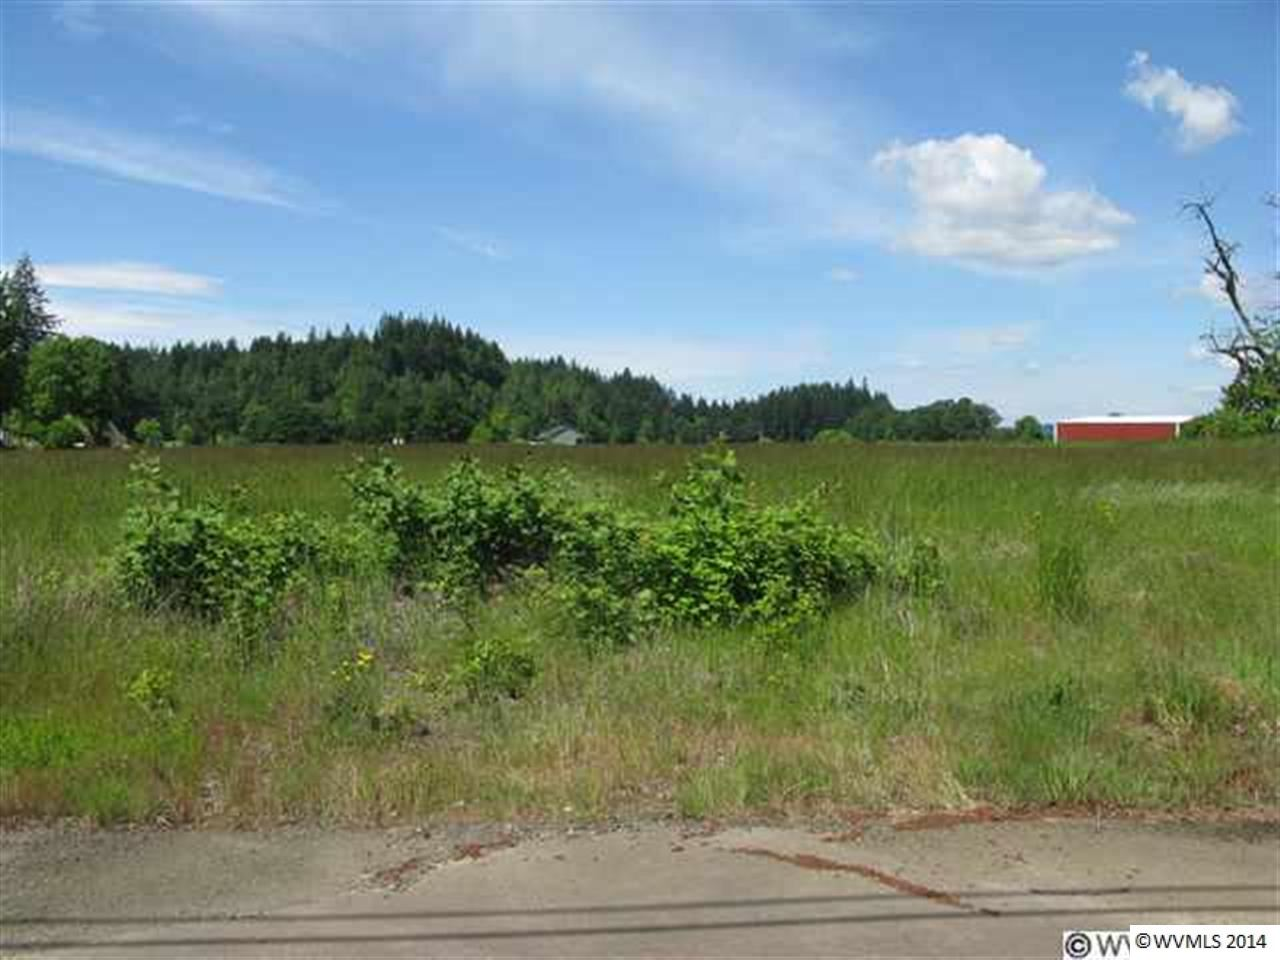 Image of Acreage for Sale near Albany, Oregon, in Linn county: 14.63 acres